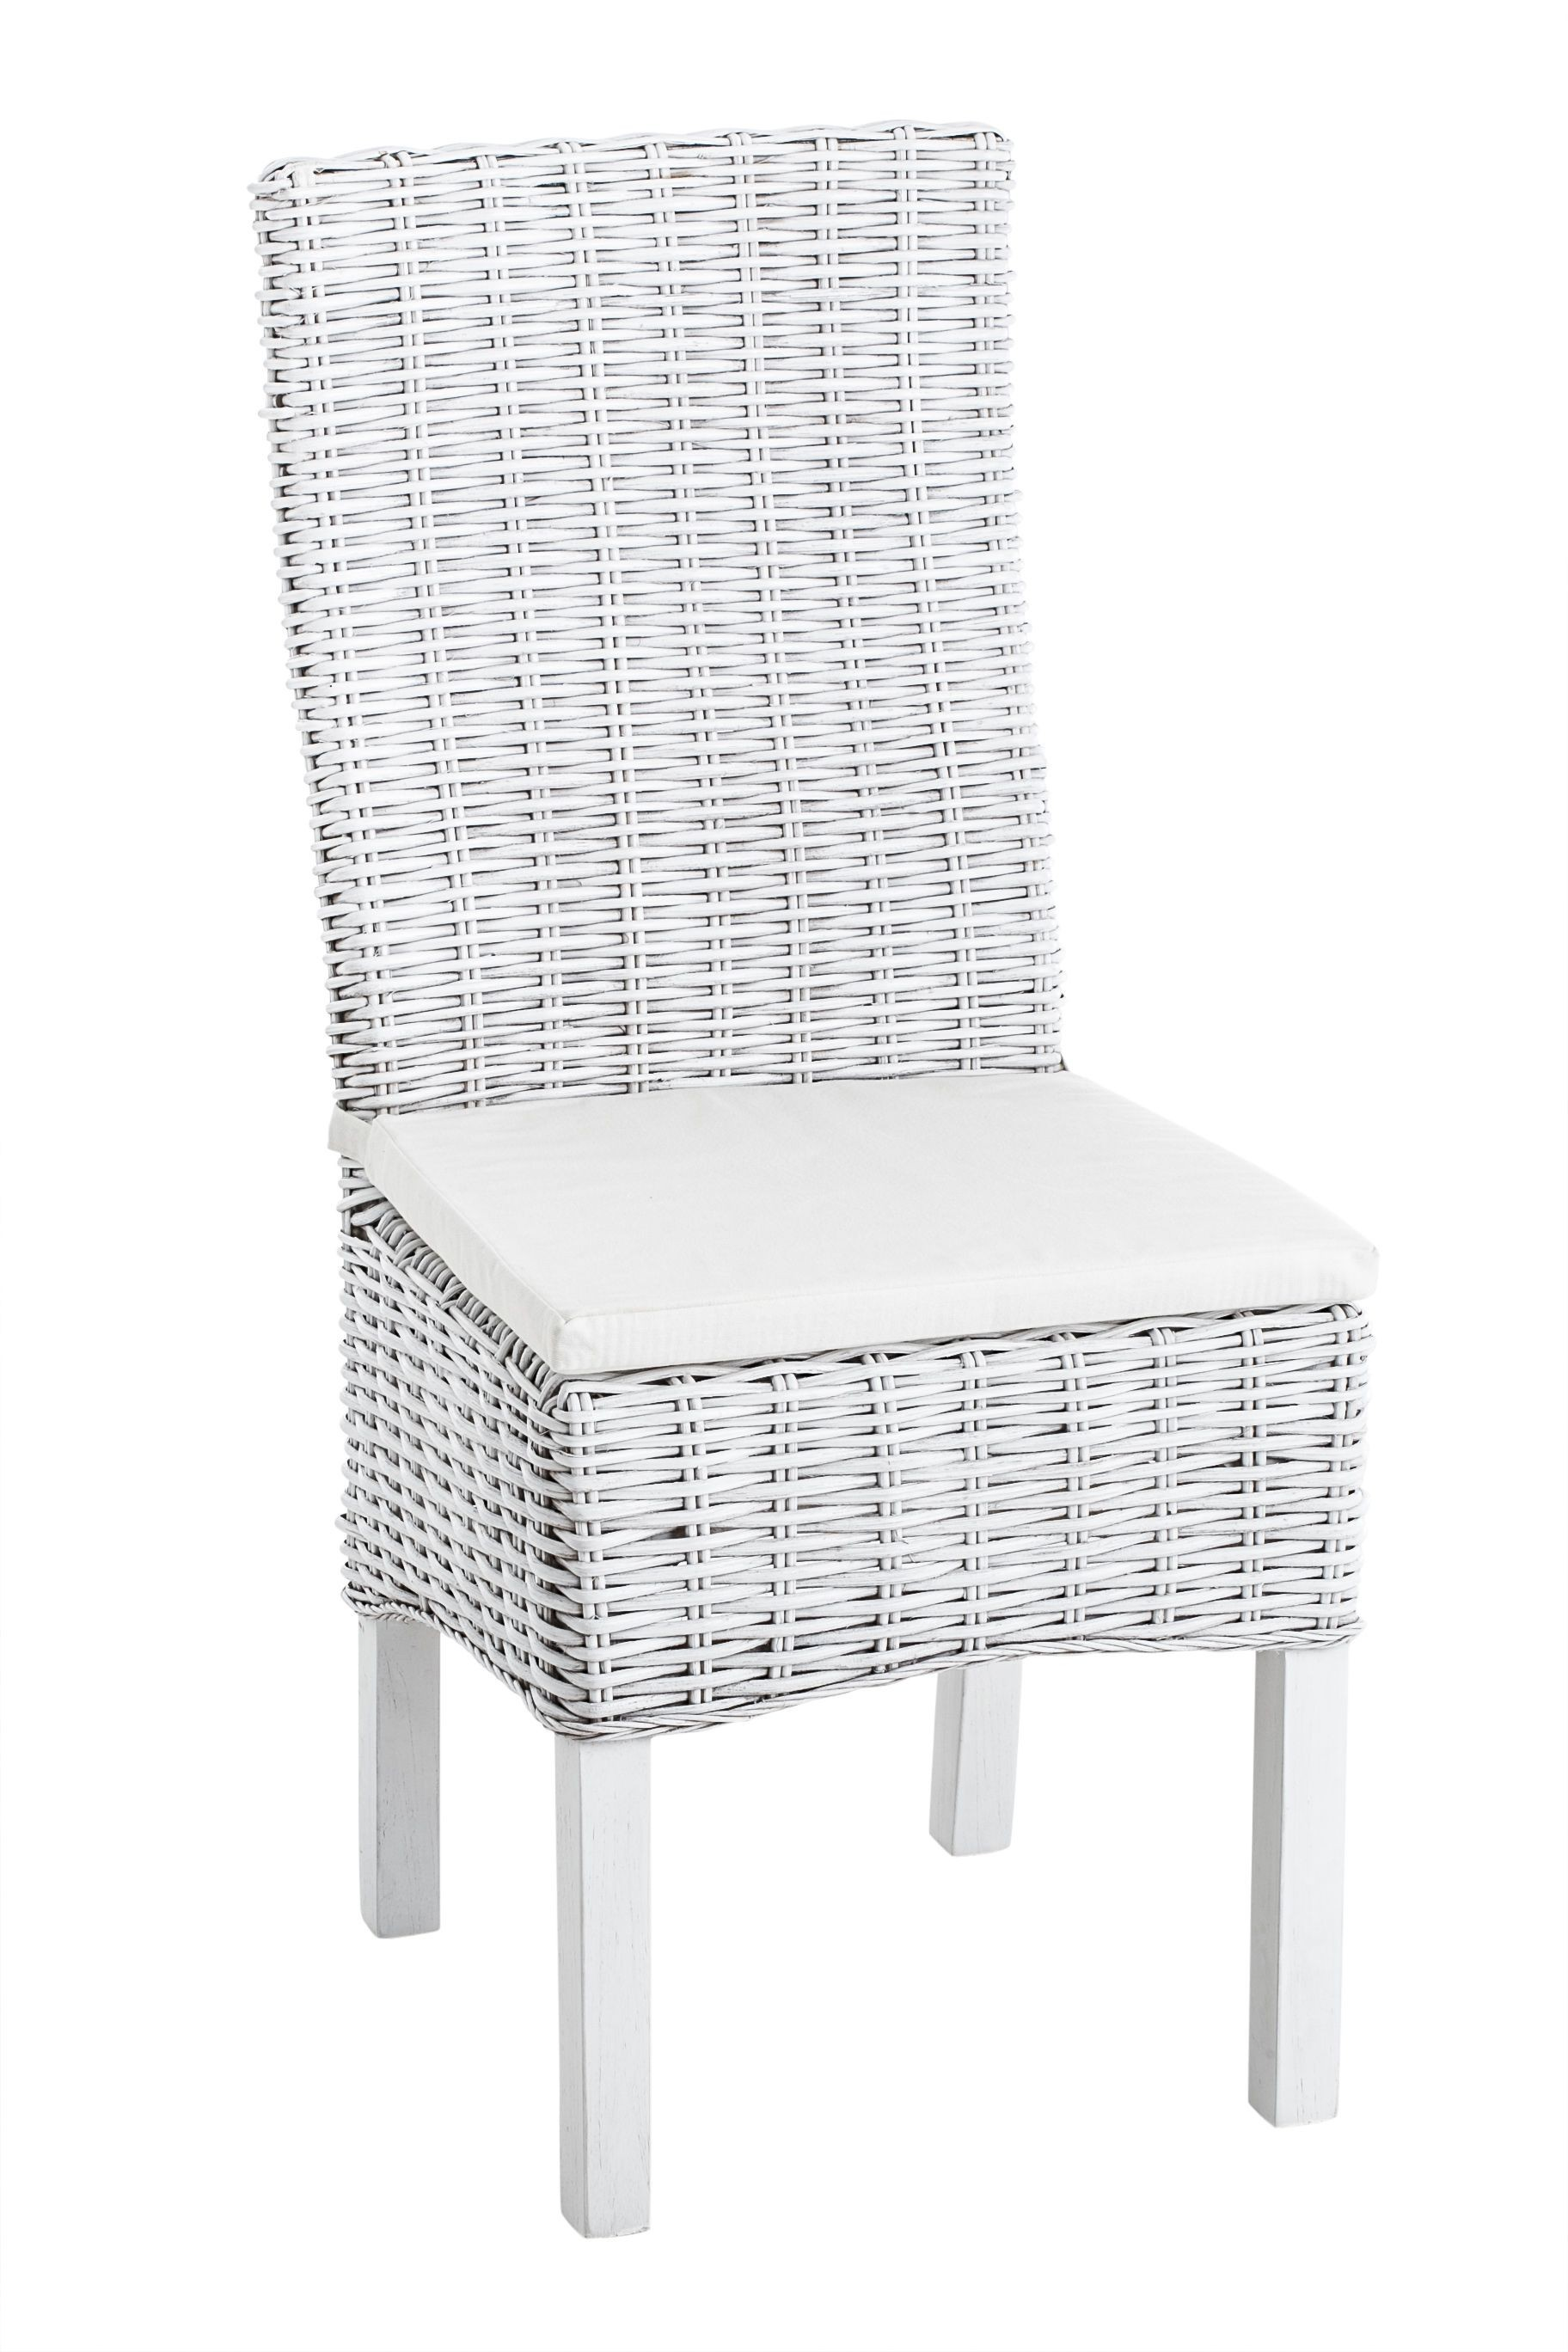 Awesome chaise rotin blanc mastic mary lma pas cher source for Chaise blanche design pas cher